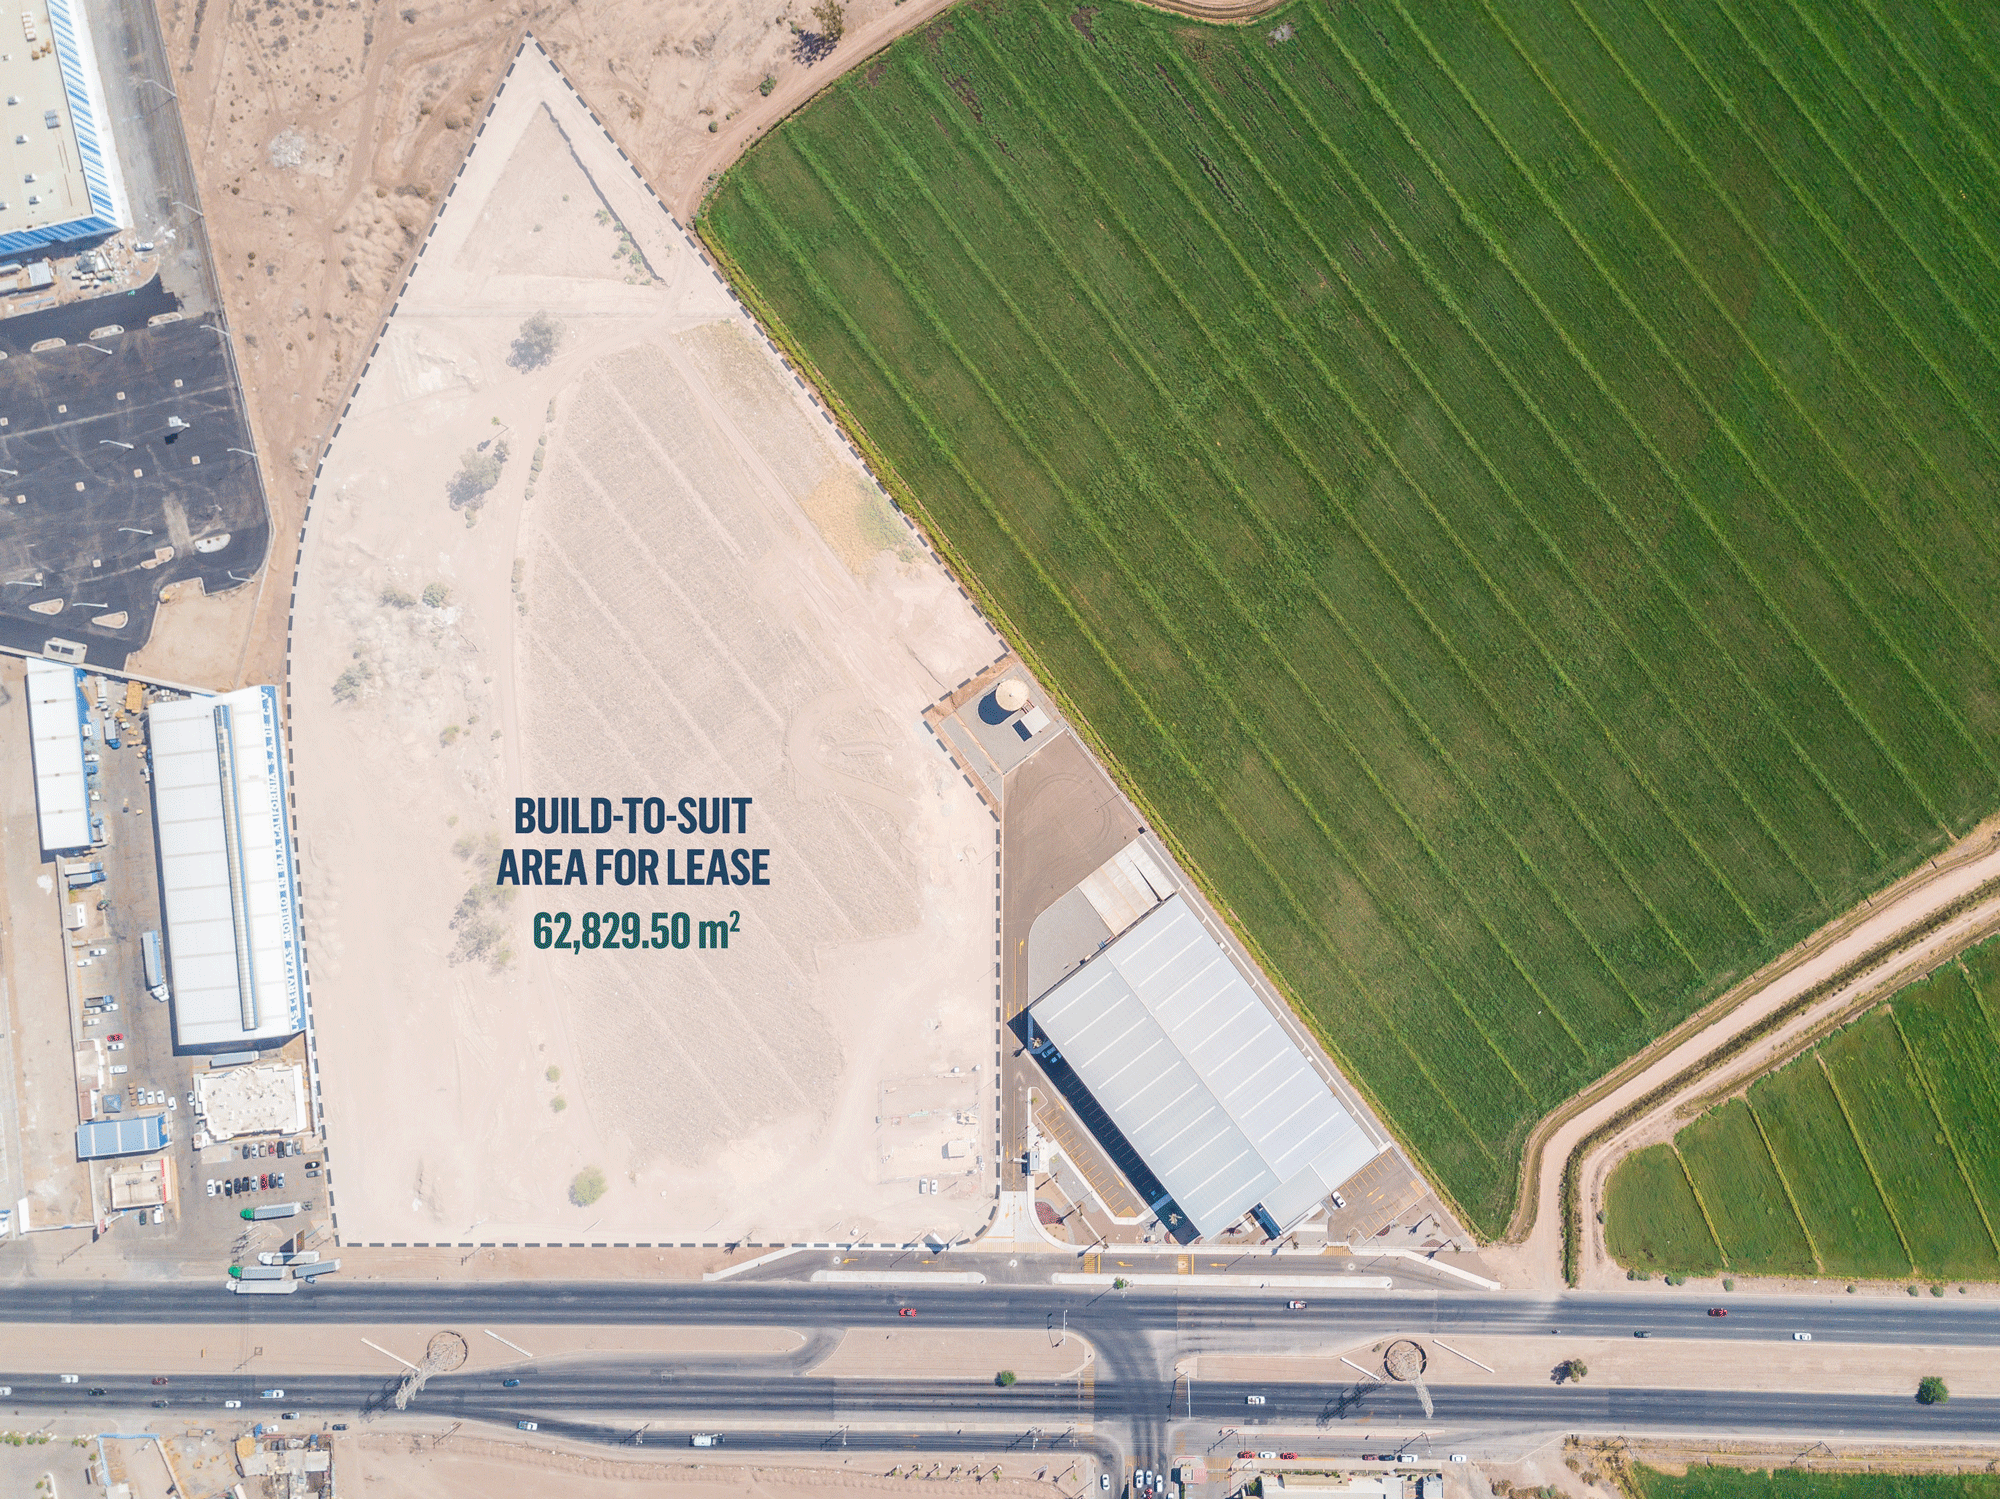 Detailed view of Build-to-suit area for lease in Mexicali, Mexico